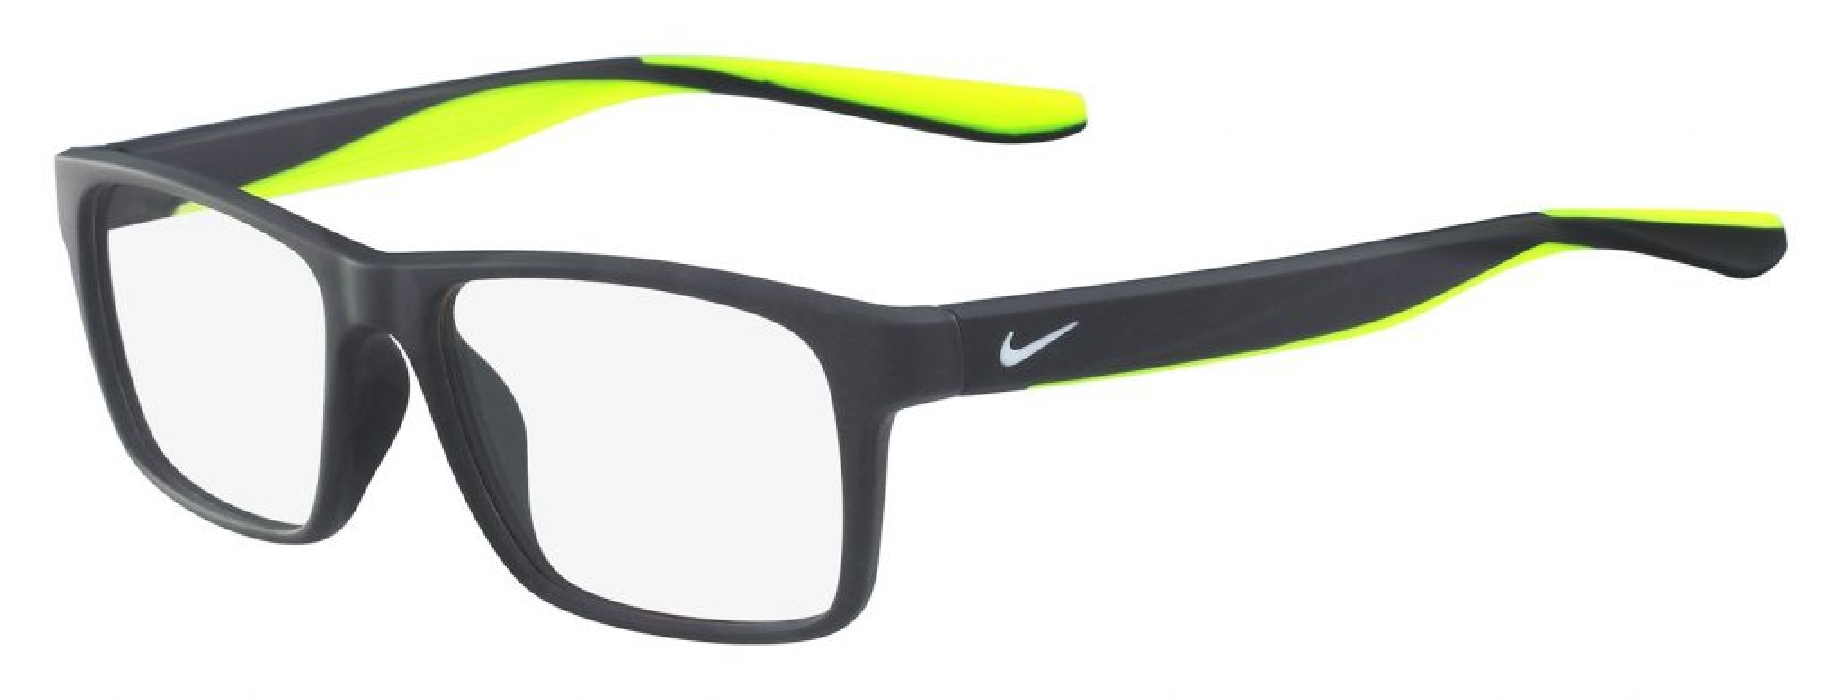 An image of Nike 7101 Matte Anthracite